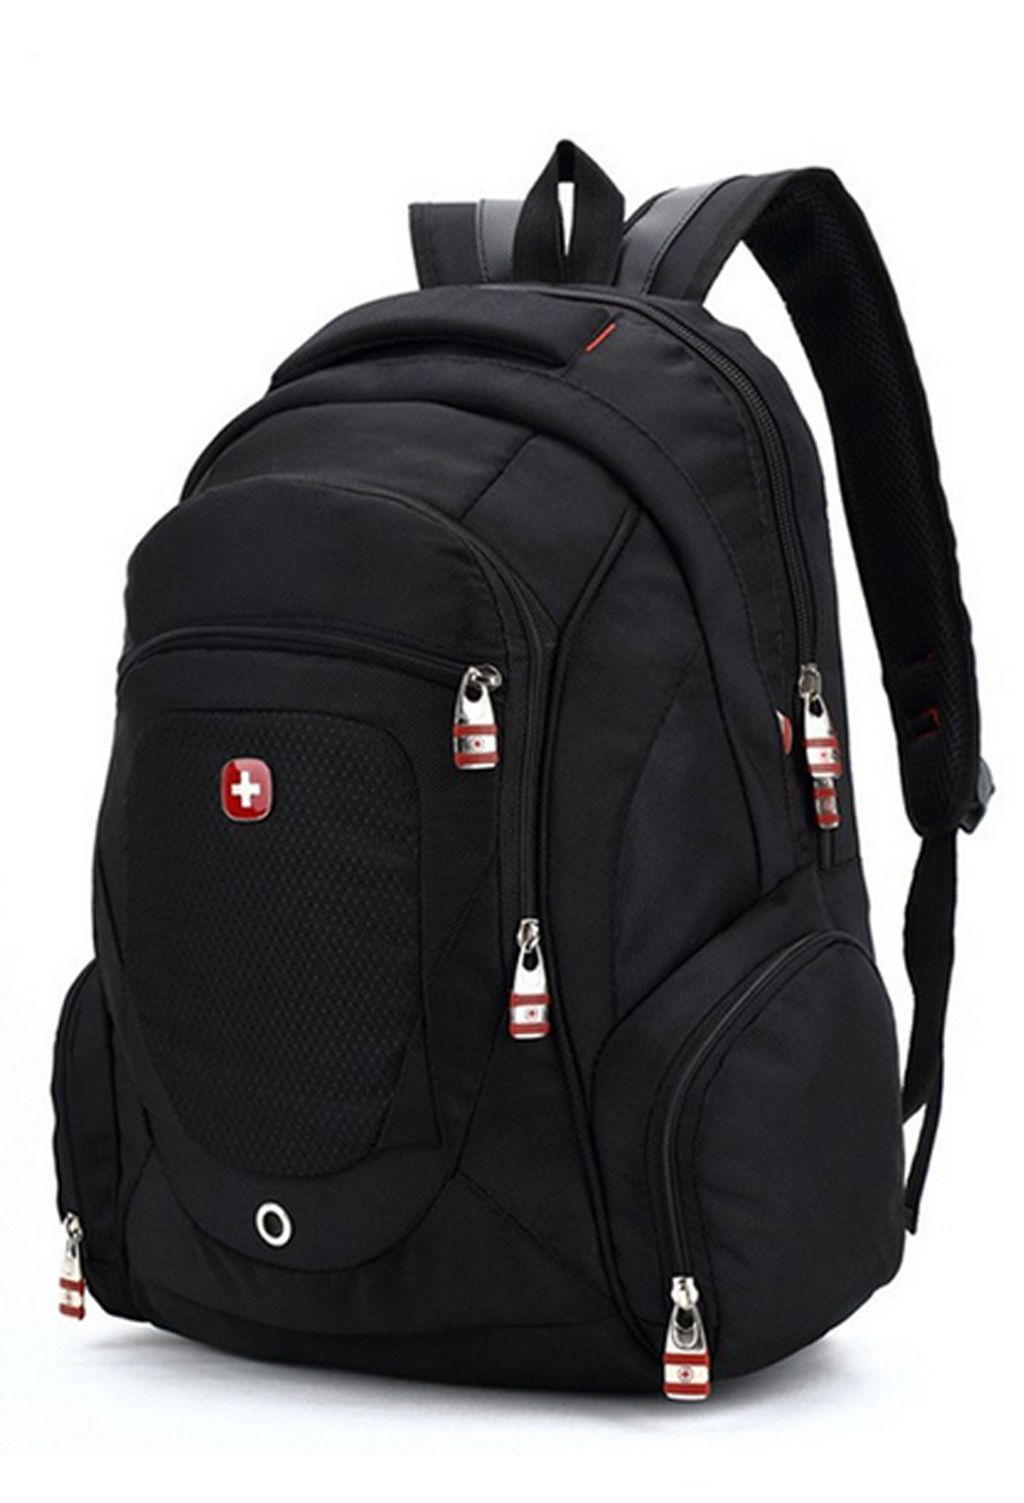 swiss gear backpack mcm backpack supreme backpack